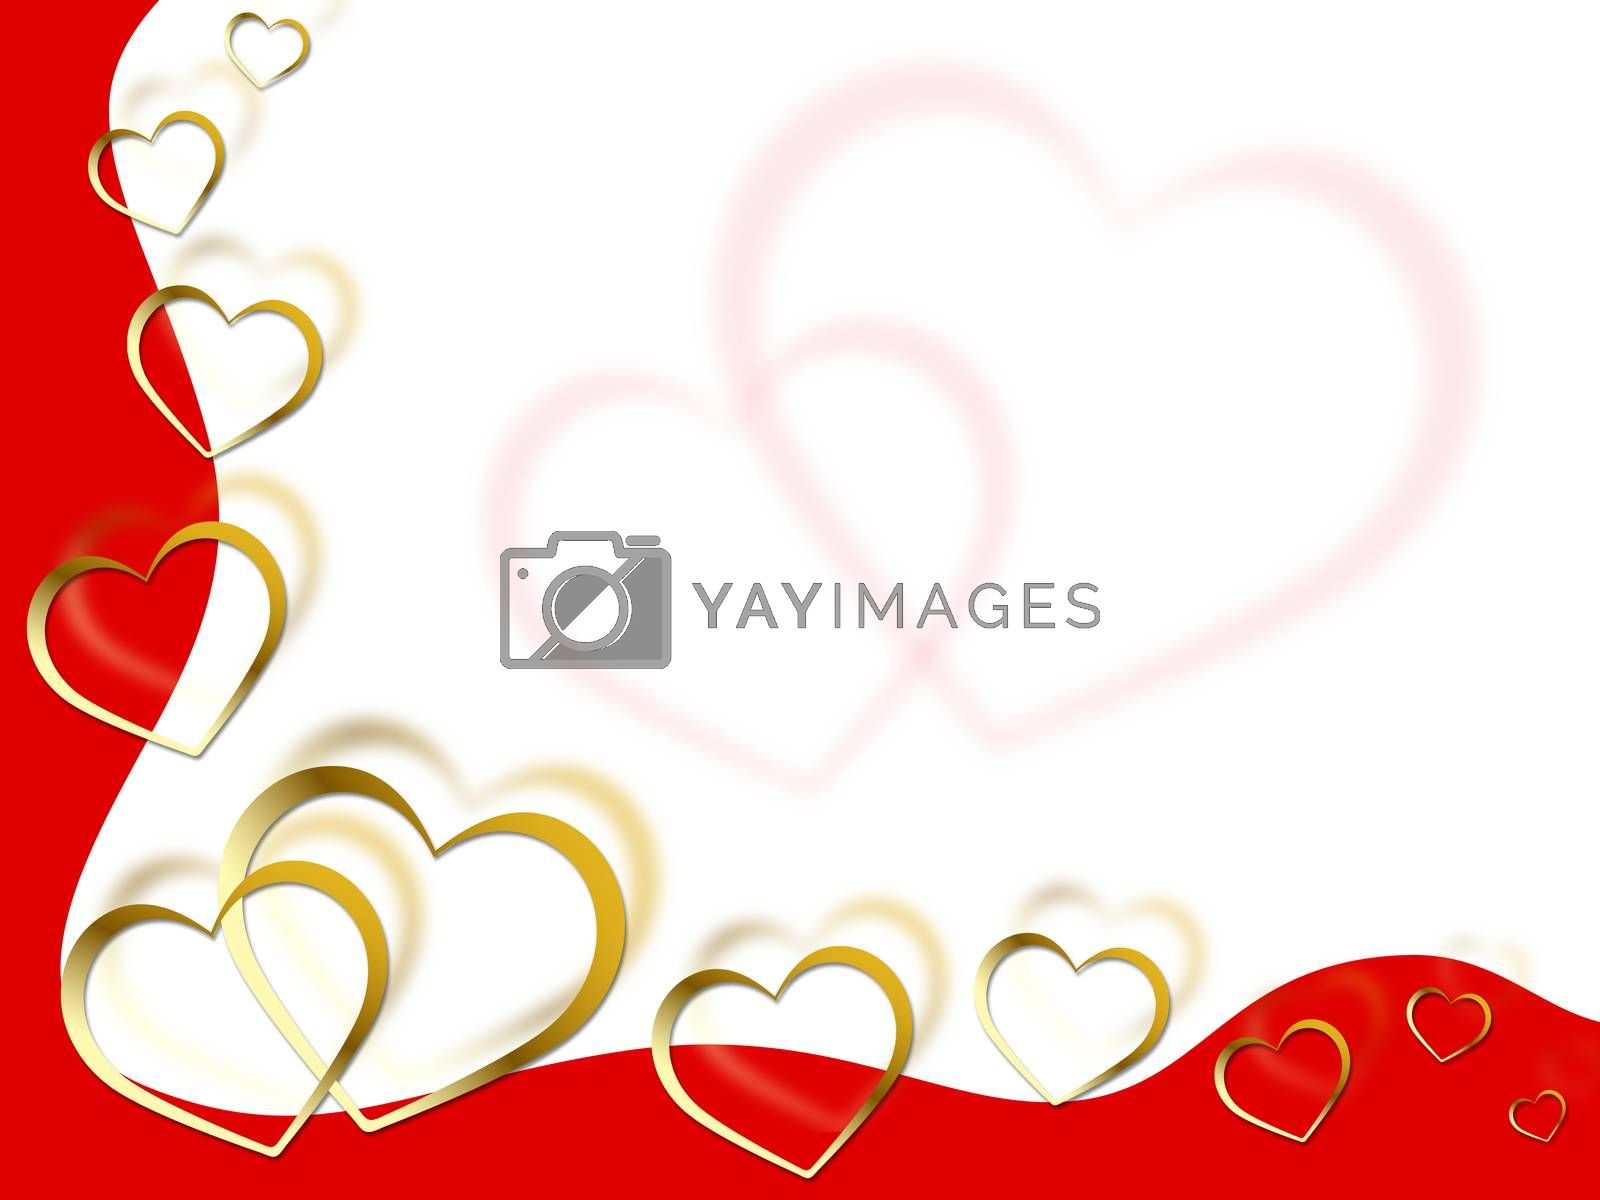 Hearts Background Meaning Shows Partner Romance And Red